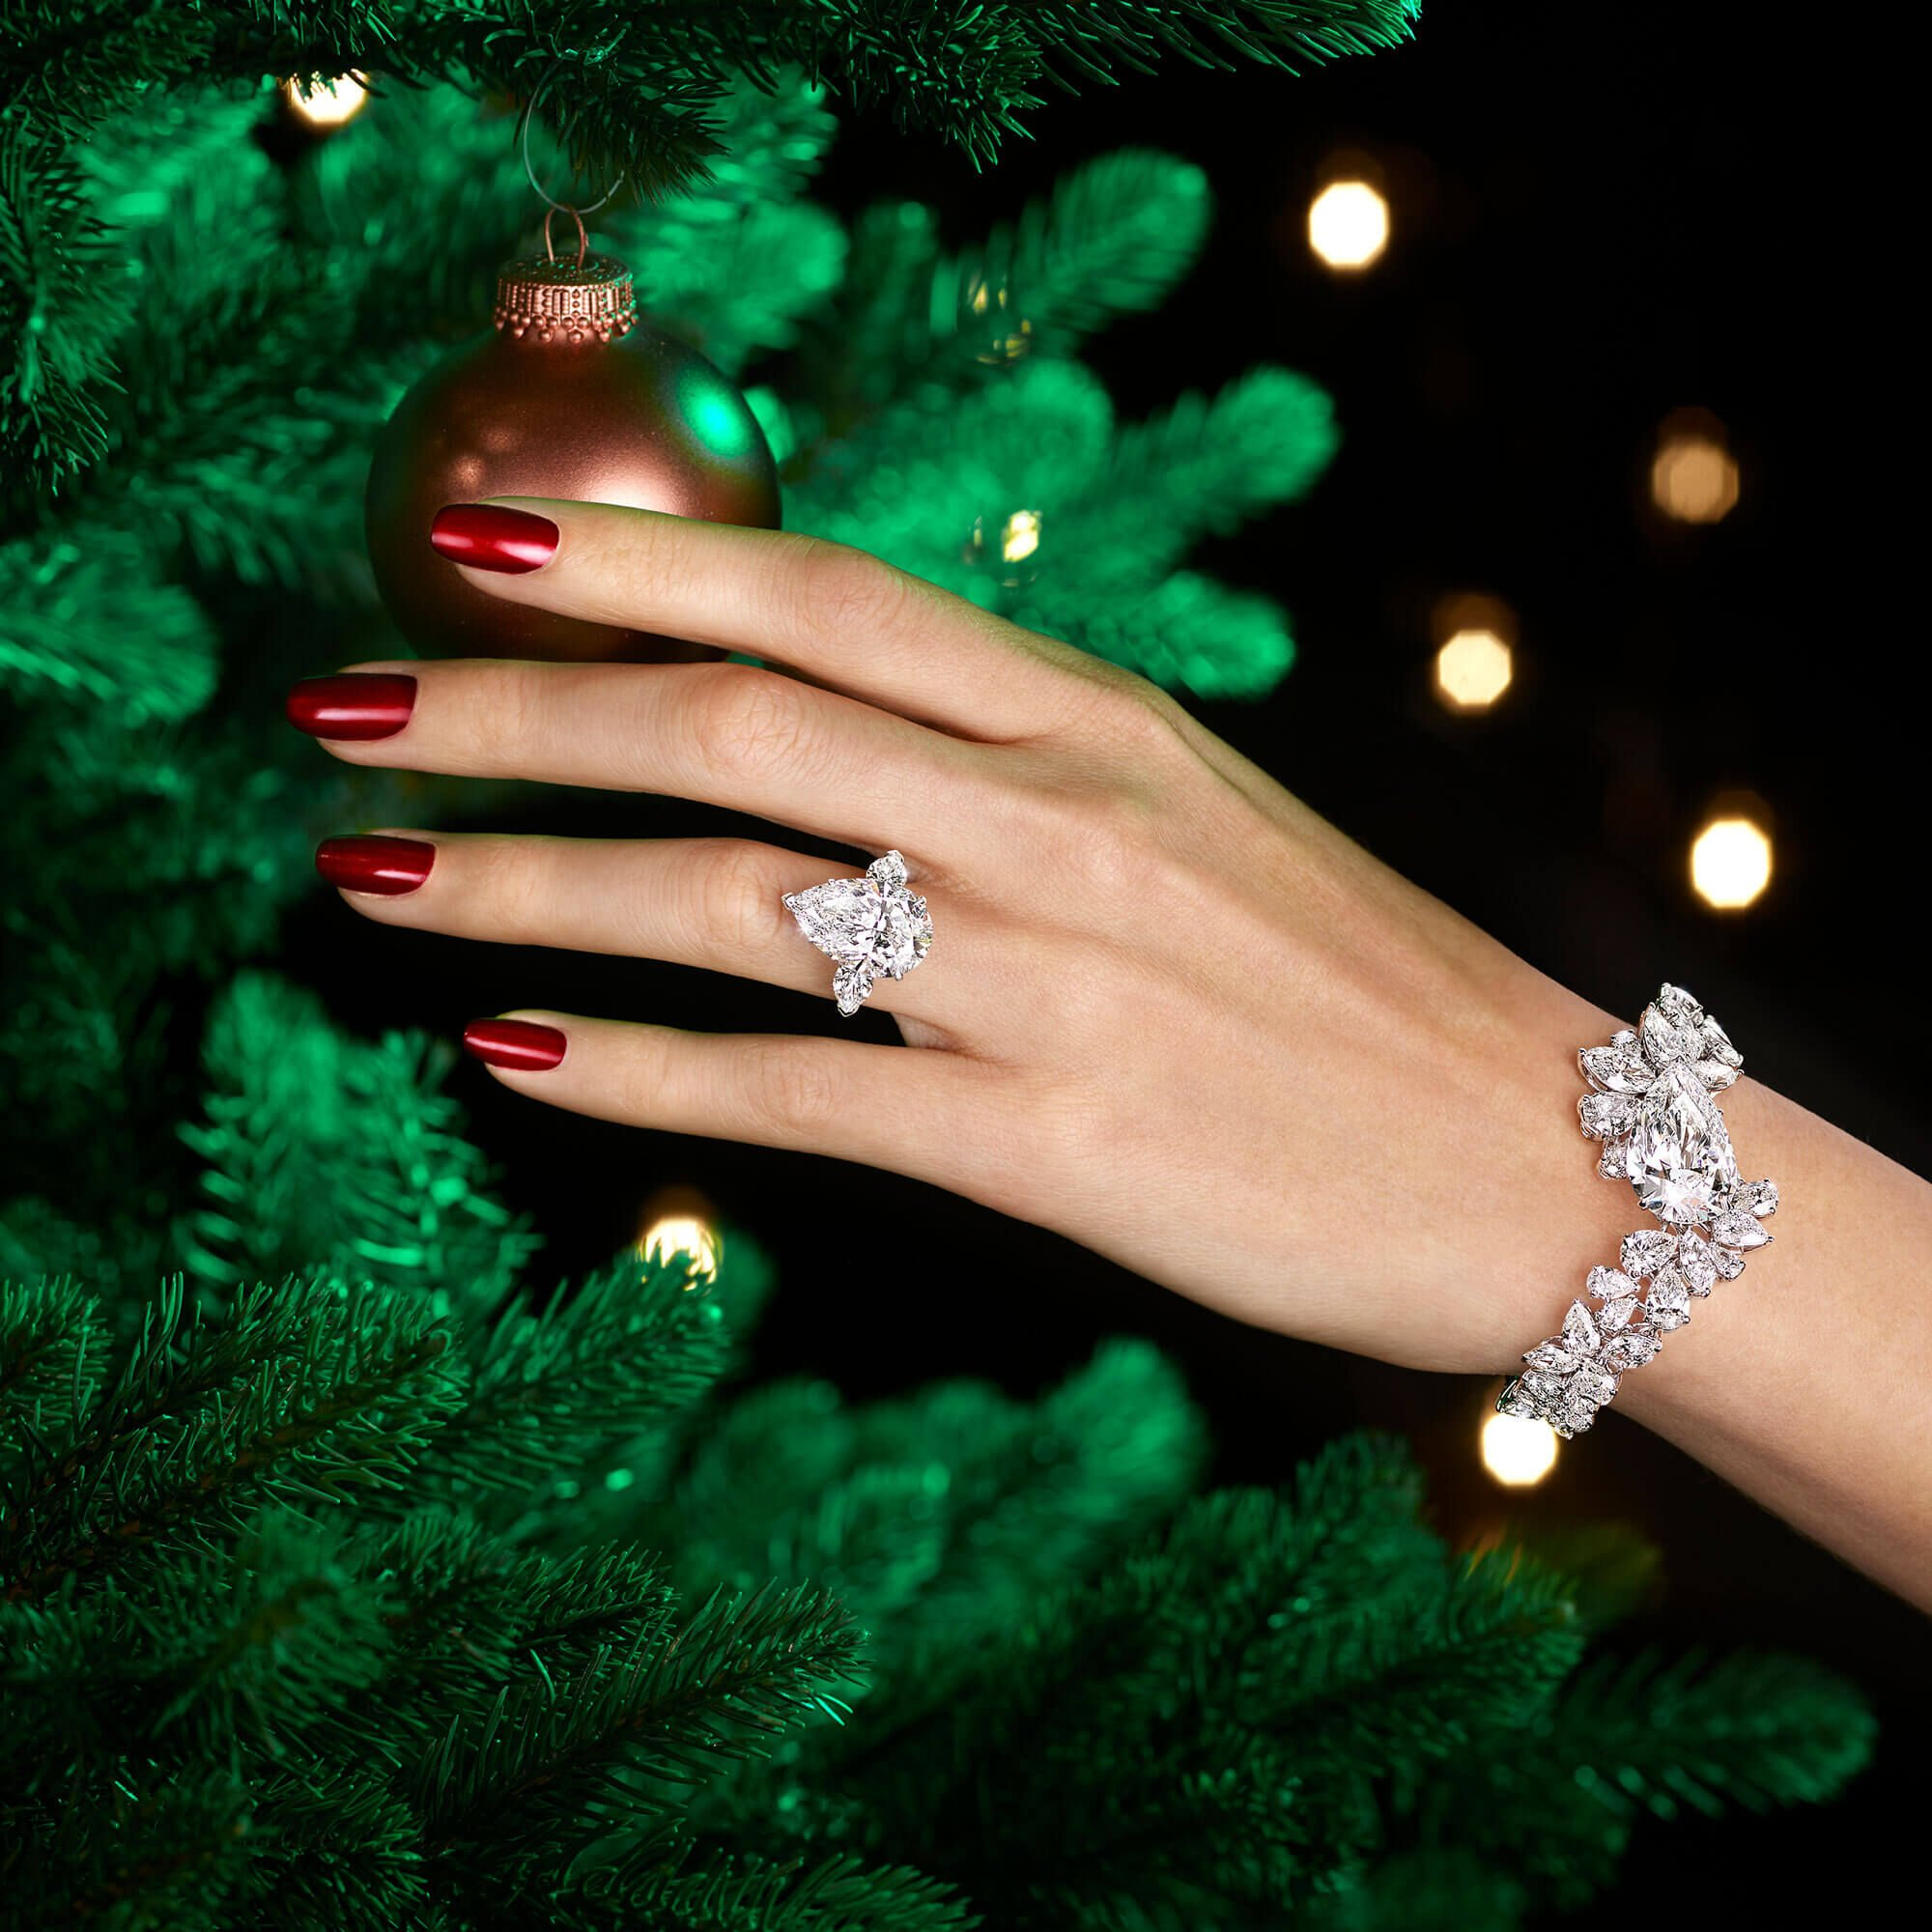 a Graff pear shape diamond ring and diamond bracelet on a lady's hand reaching out to an ornament on a christmas tree.